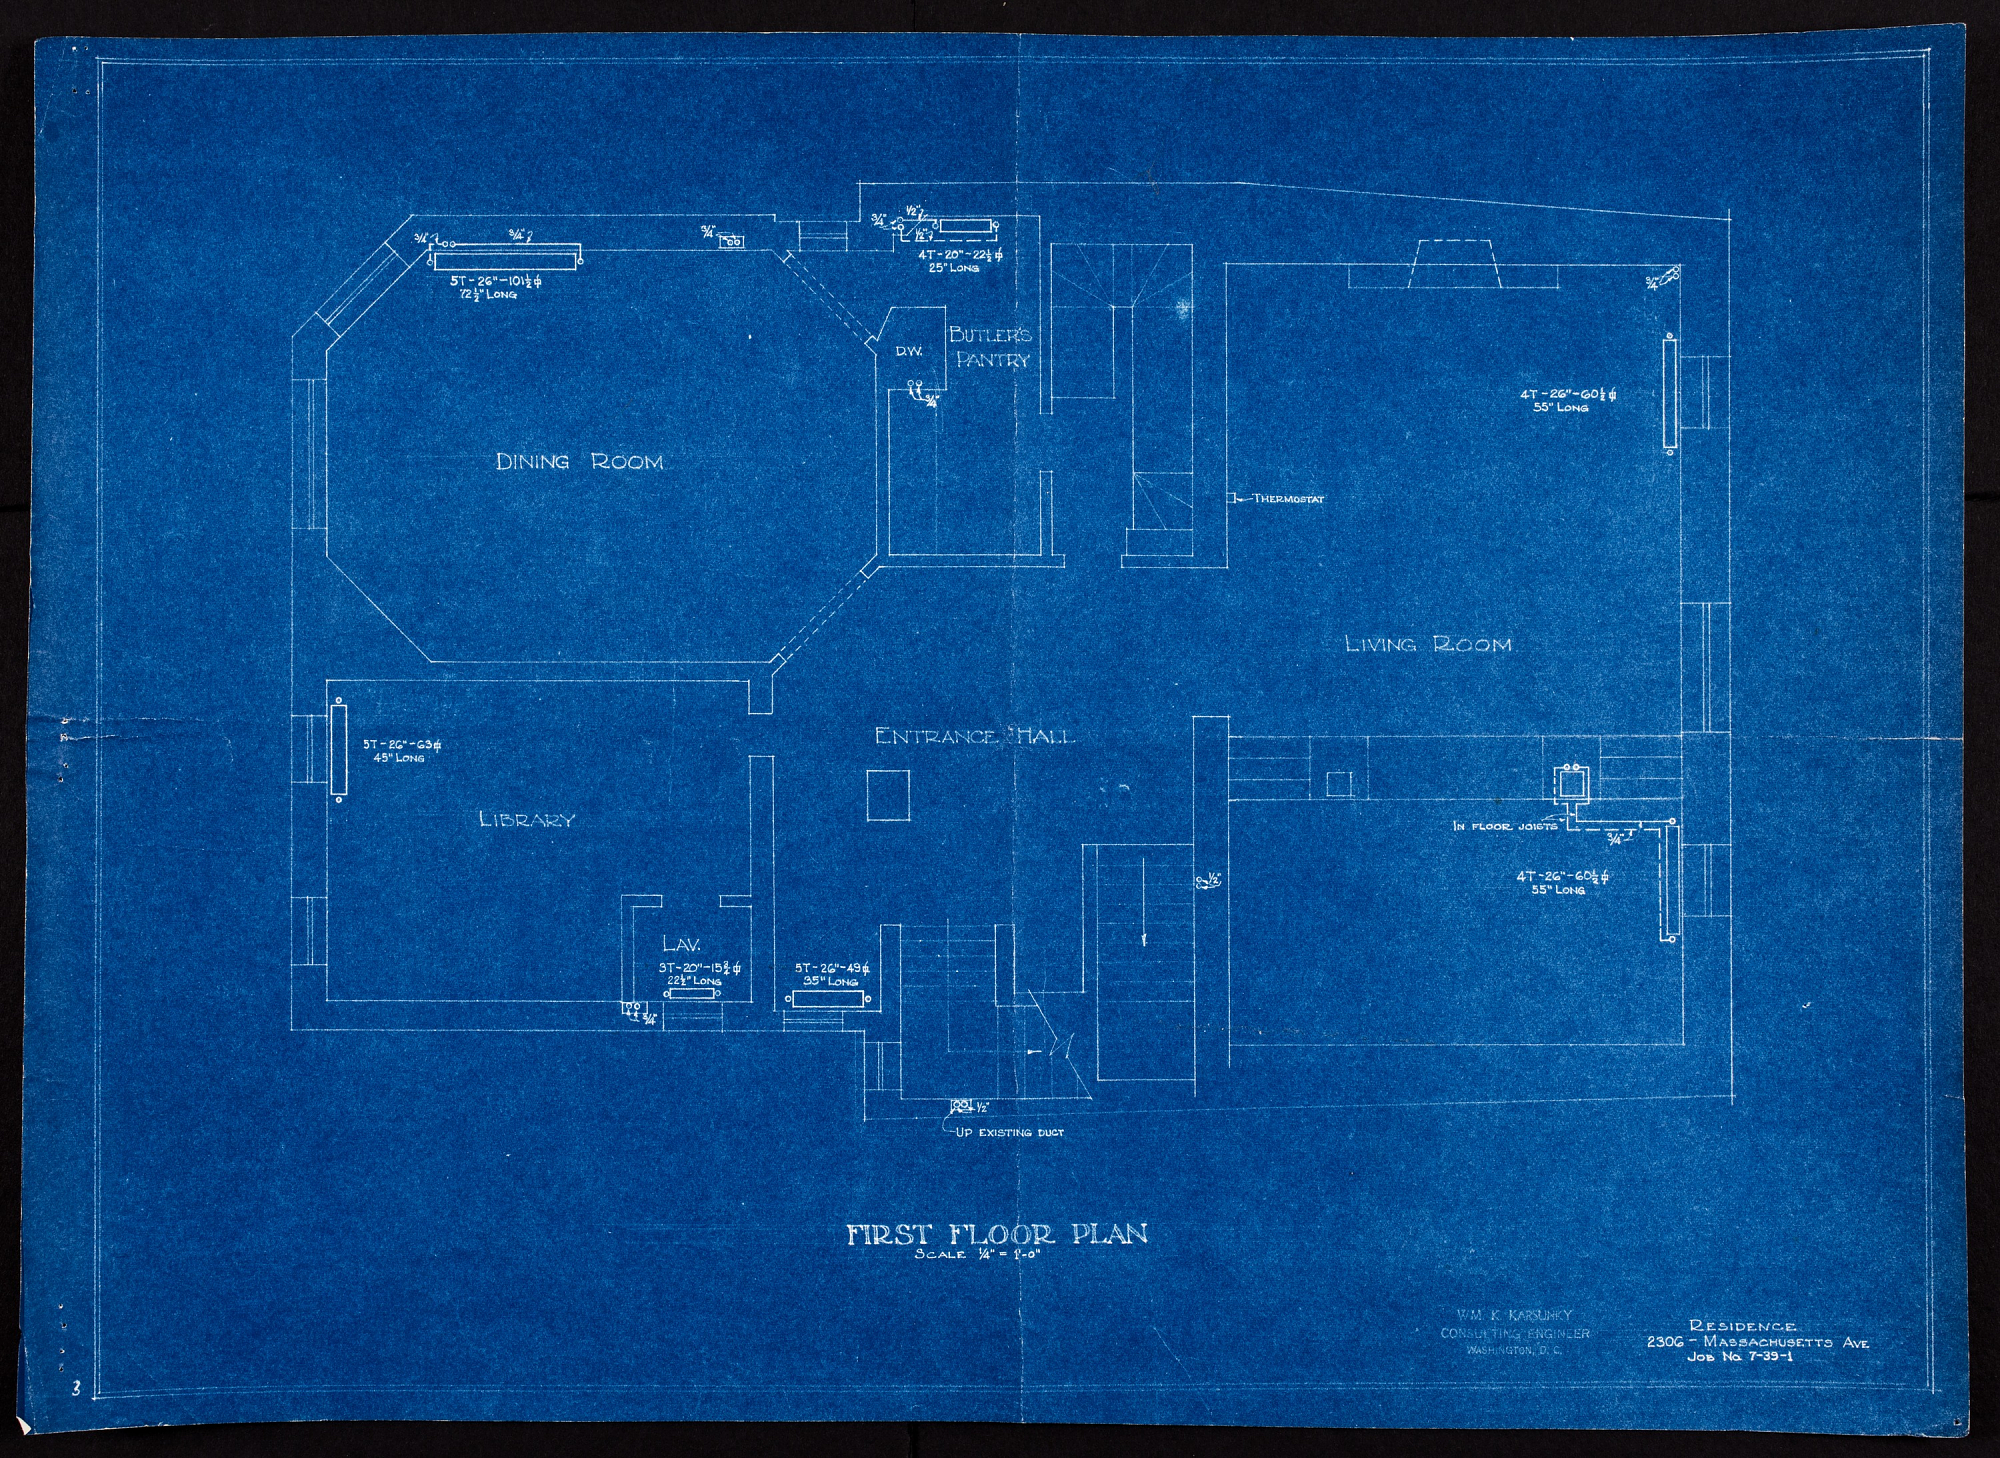 Blueprint of first floor showing dining room, living room, entrance, and library.